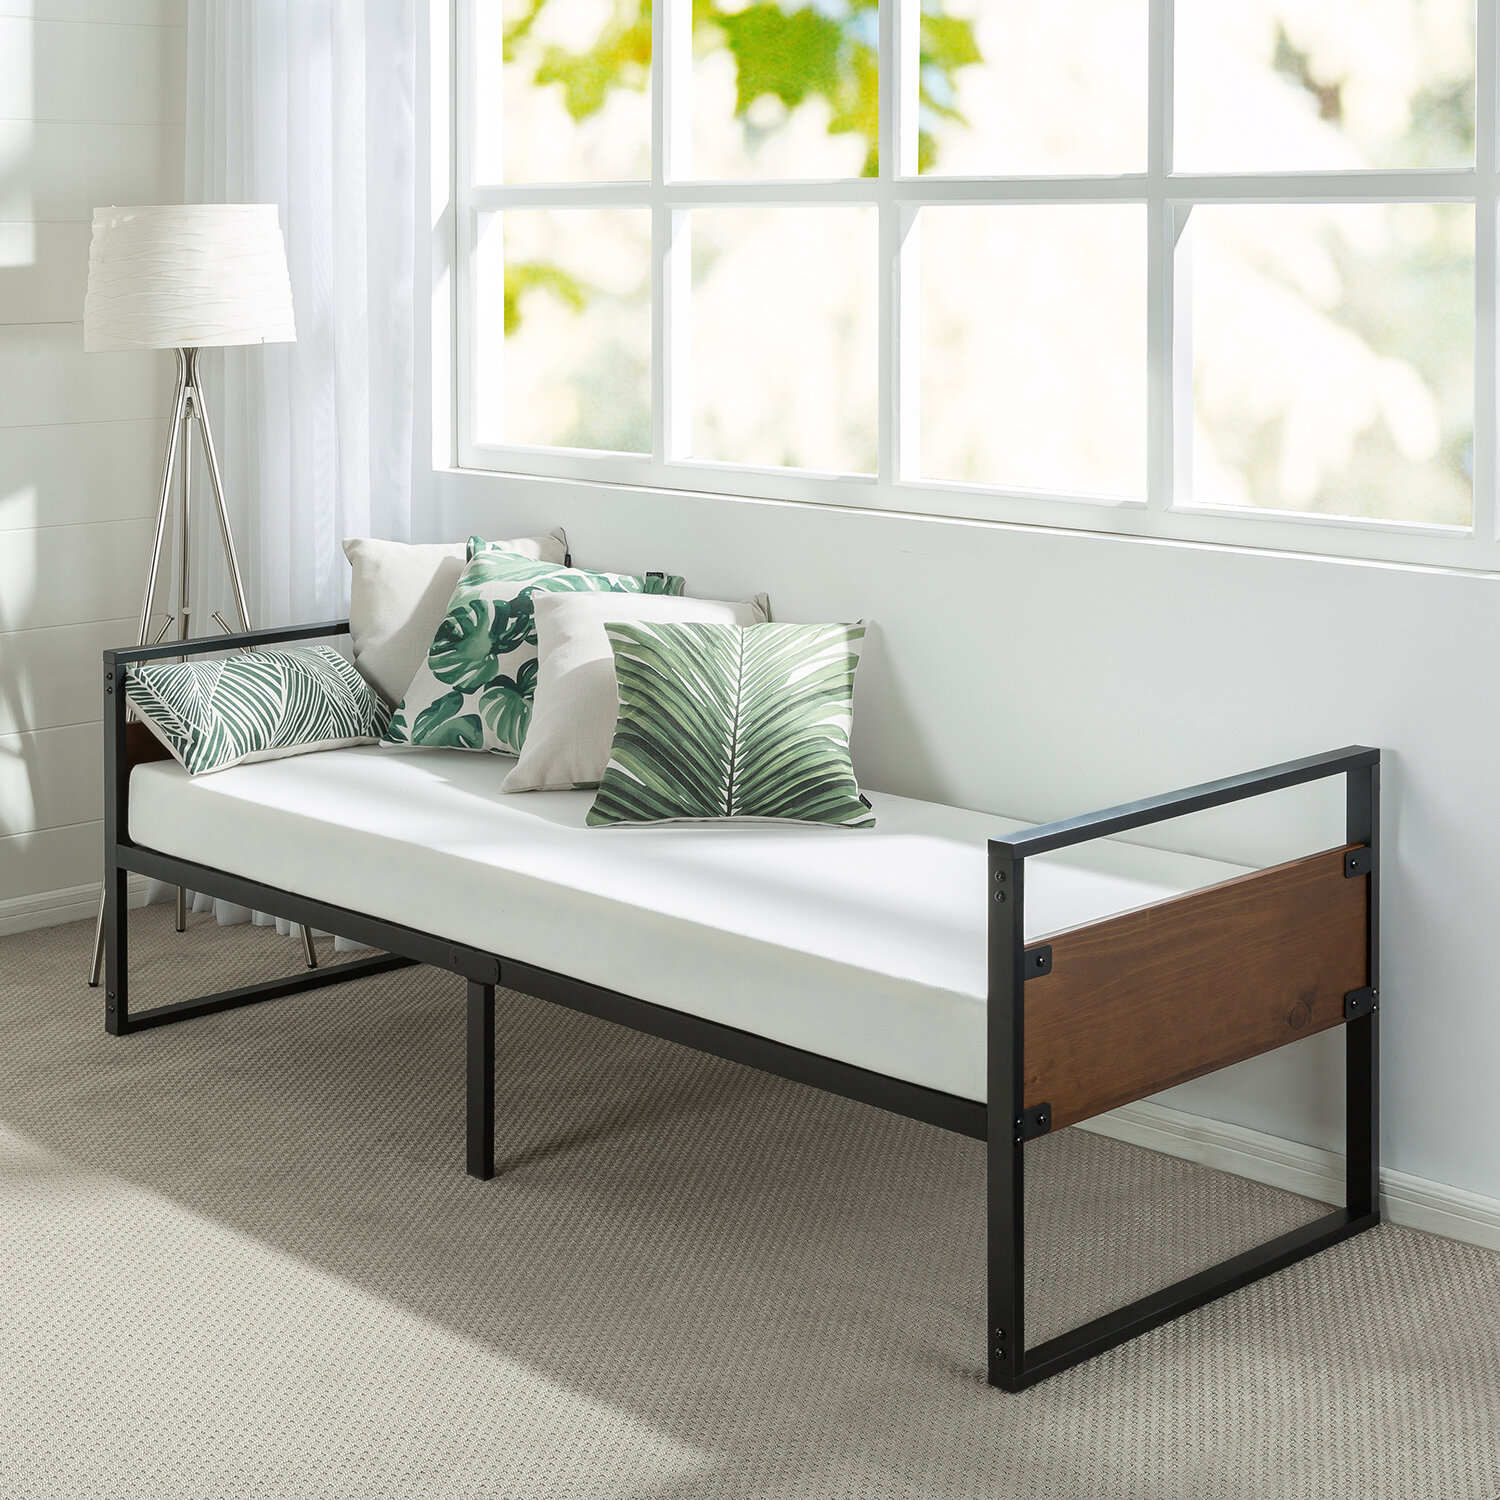 frame ikea trysil bed queen mattress catalog y ca products en lur